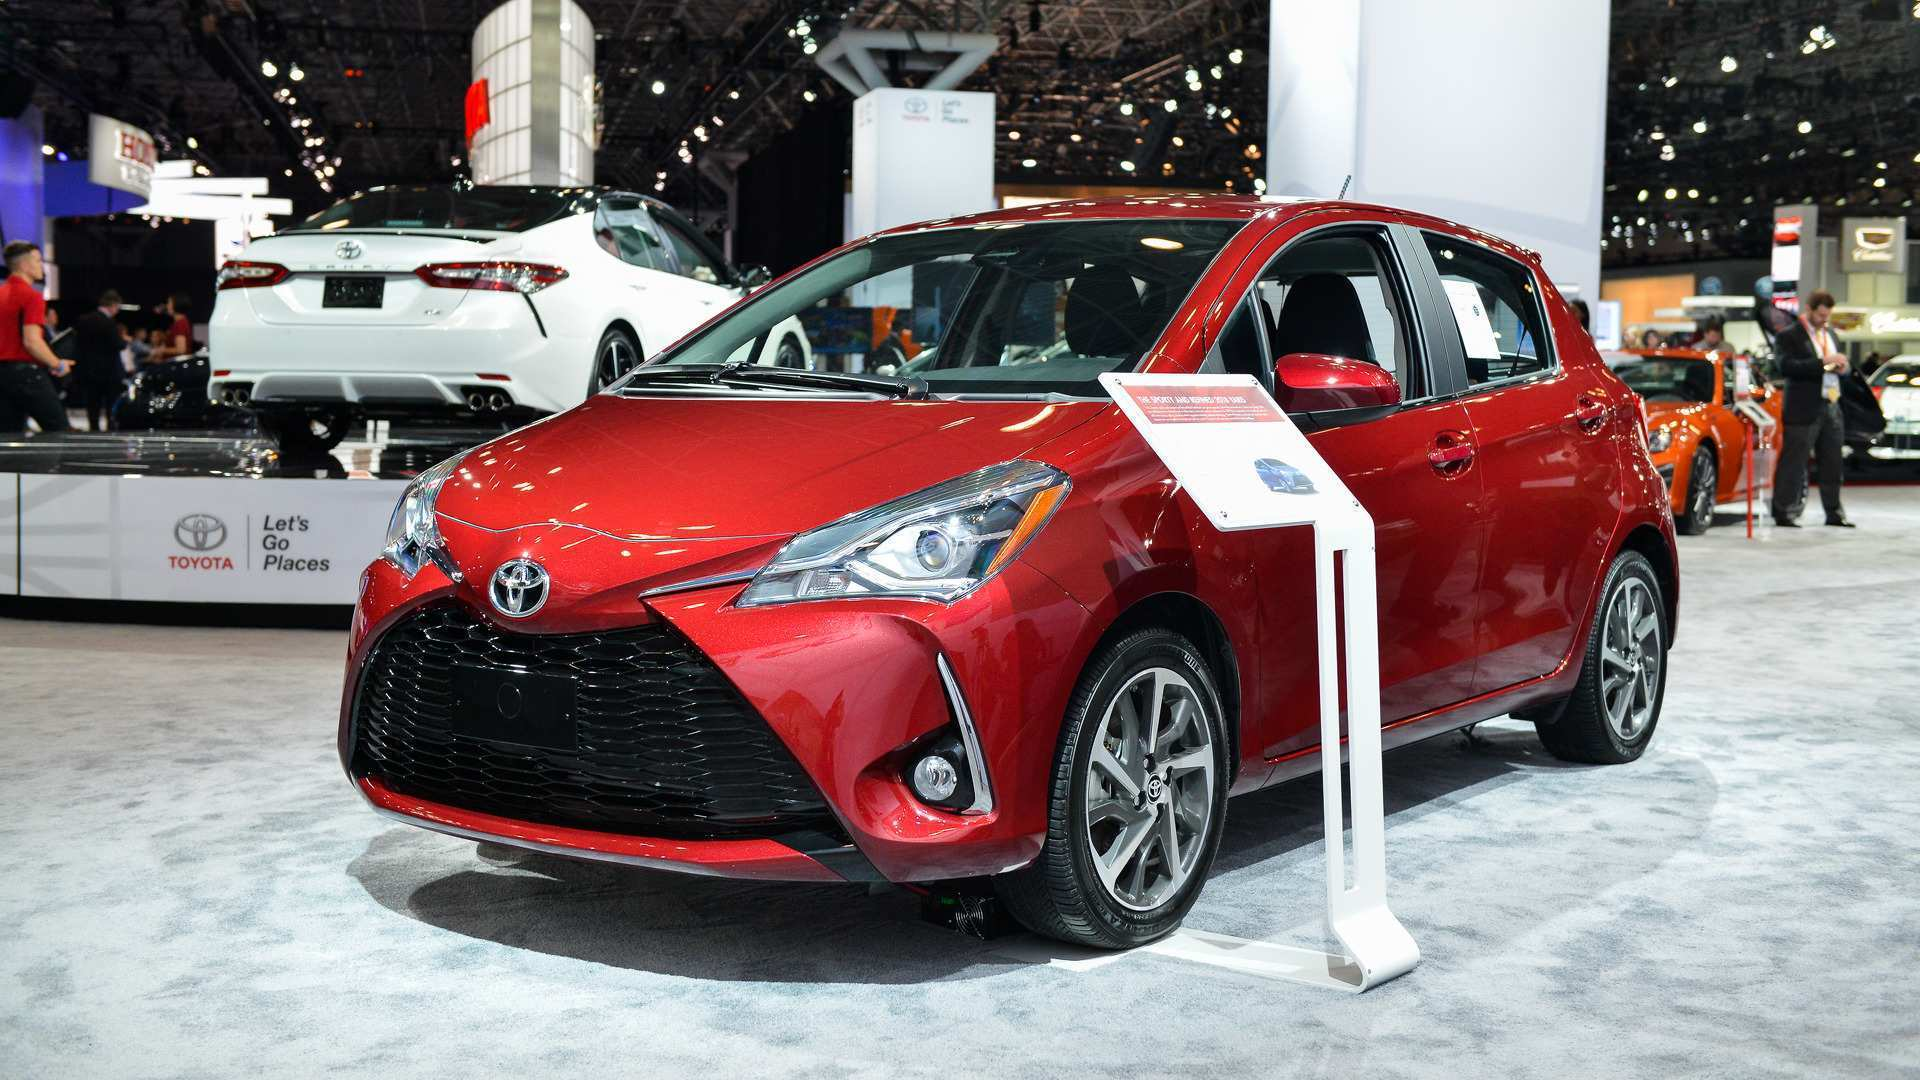 40 A Toyota Yaris 2020 Concept Price And Review